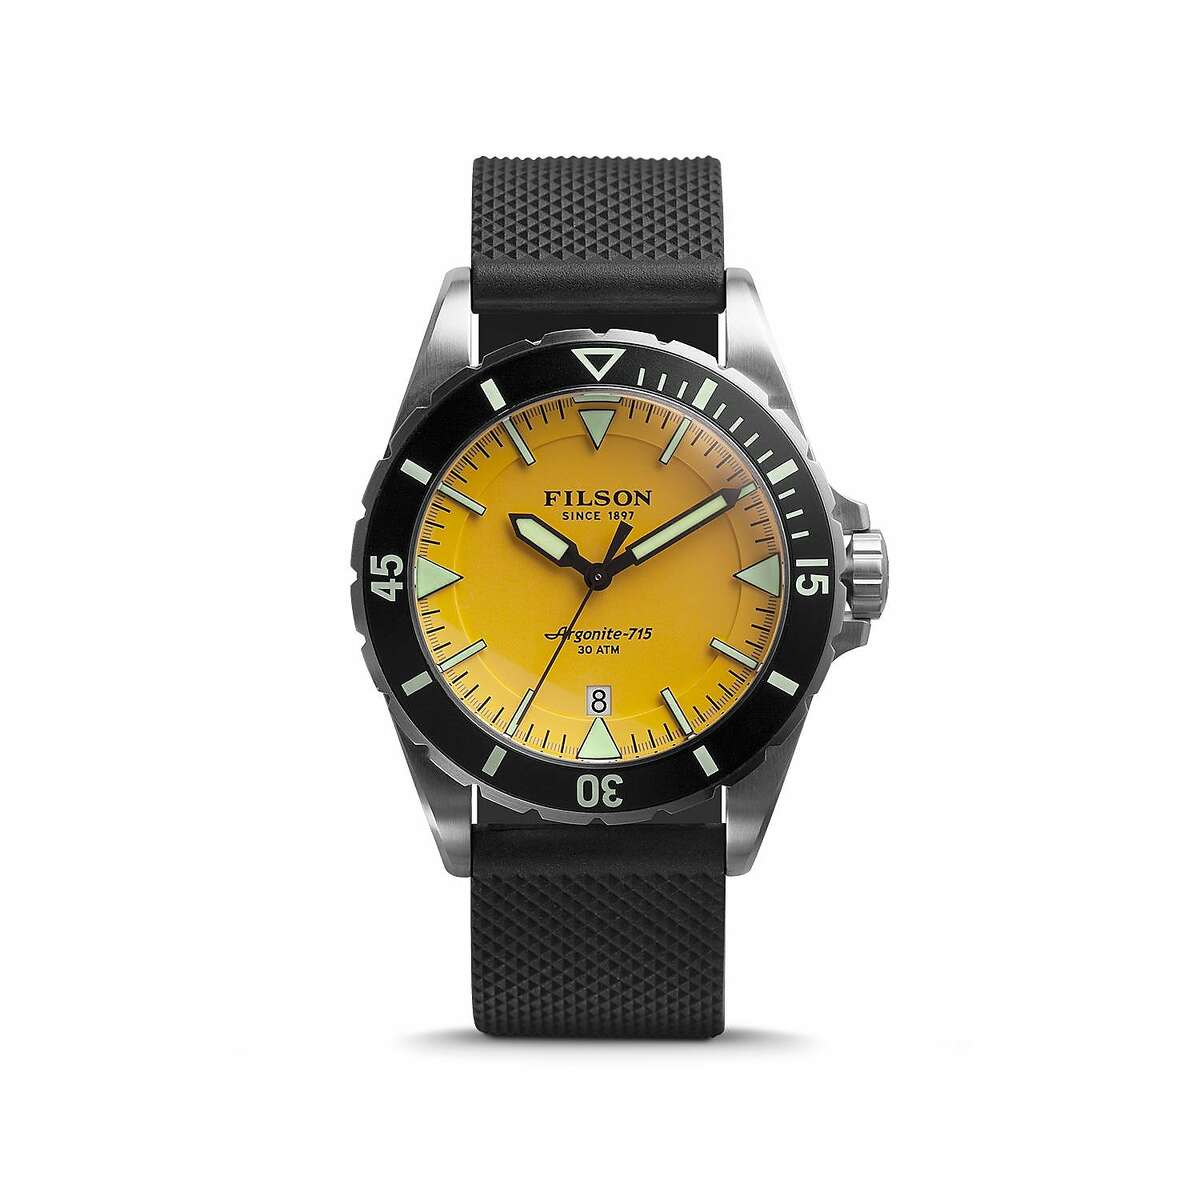 Filson unveils their new Dutch Harbor watch which comes in various styles, priced between $750 to $800.